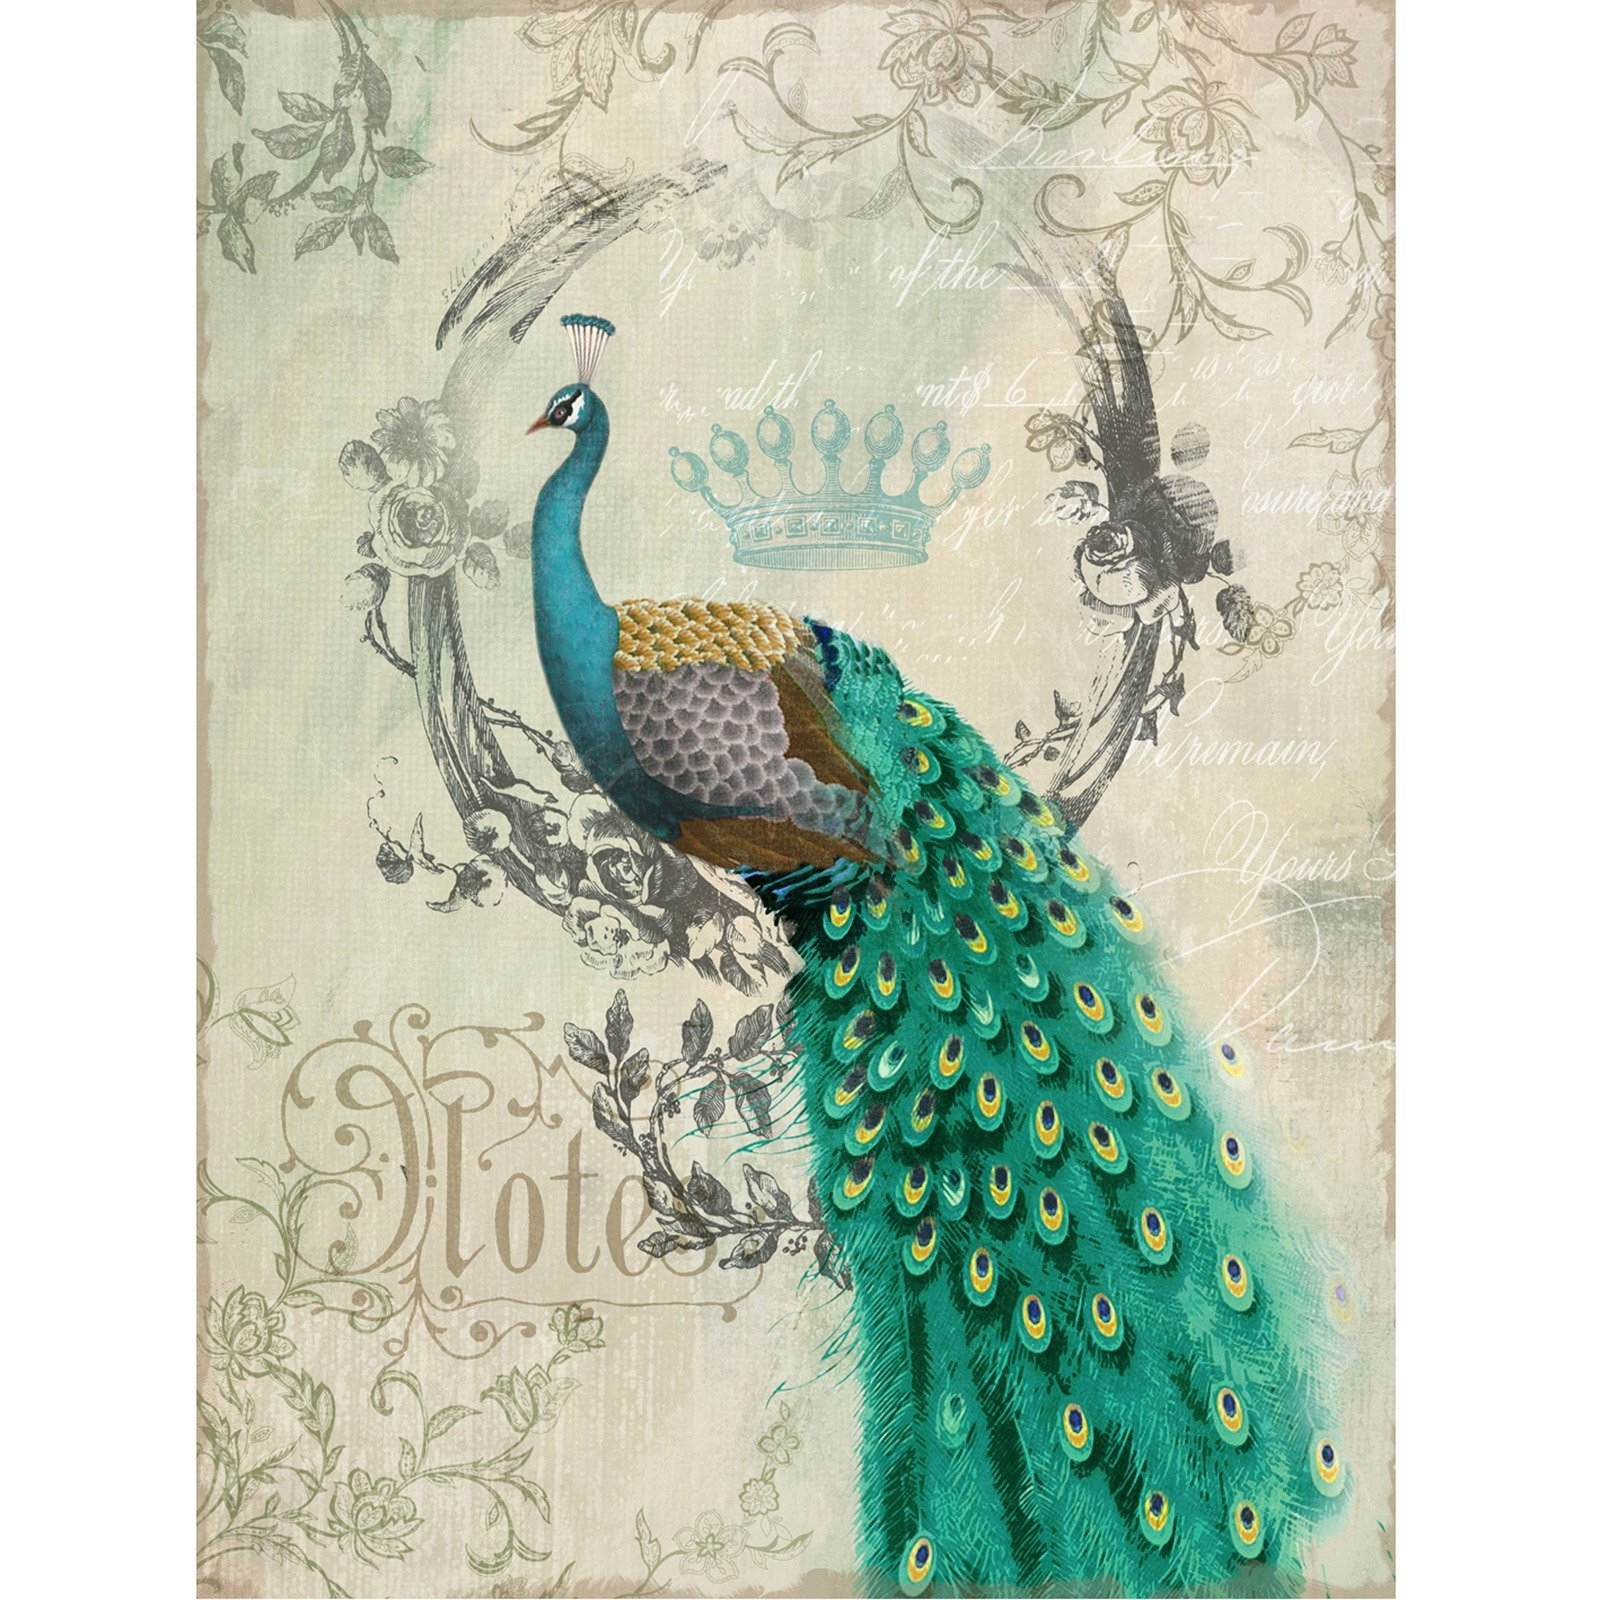 Yosemite Home Decor Peacock Poise Ii Wall Art – 24W X 35H In With Regard To Most Current Peacock Wall Art (Gallery 6 of 15)